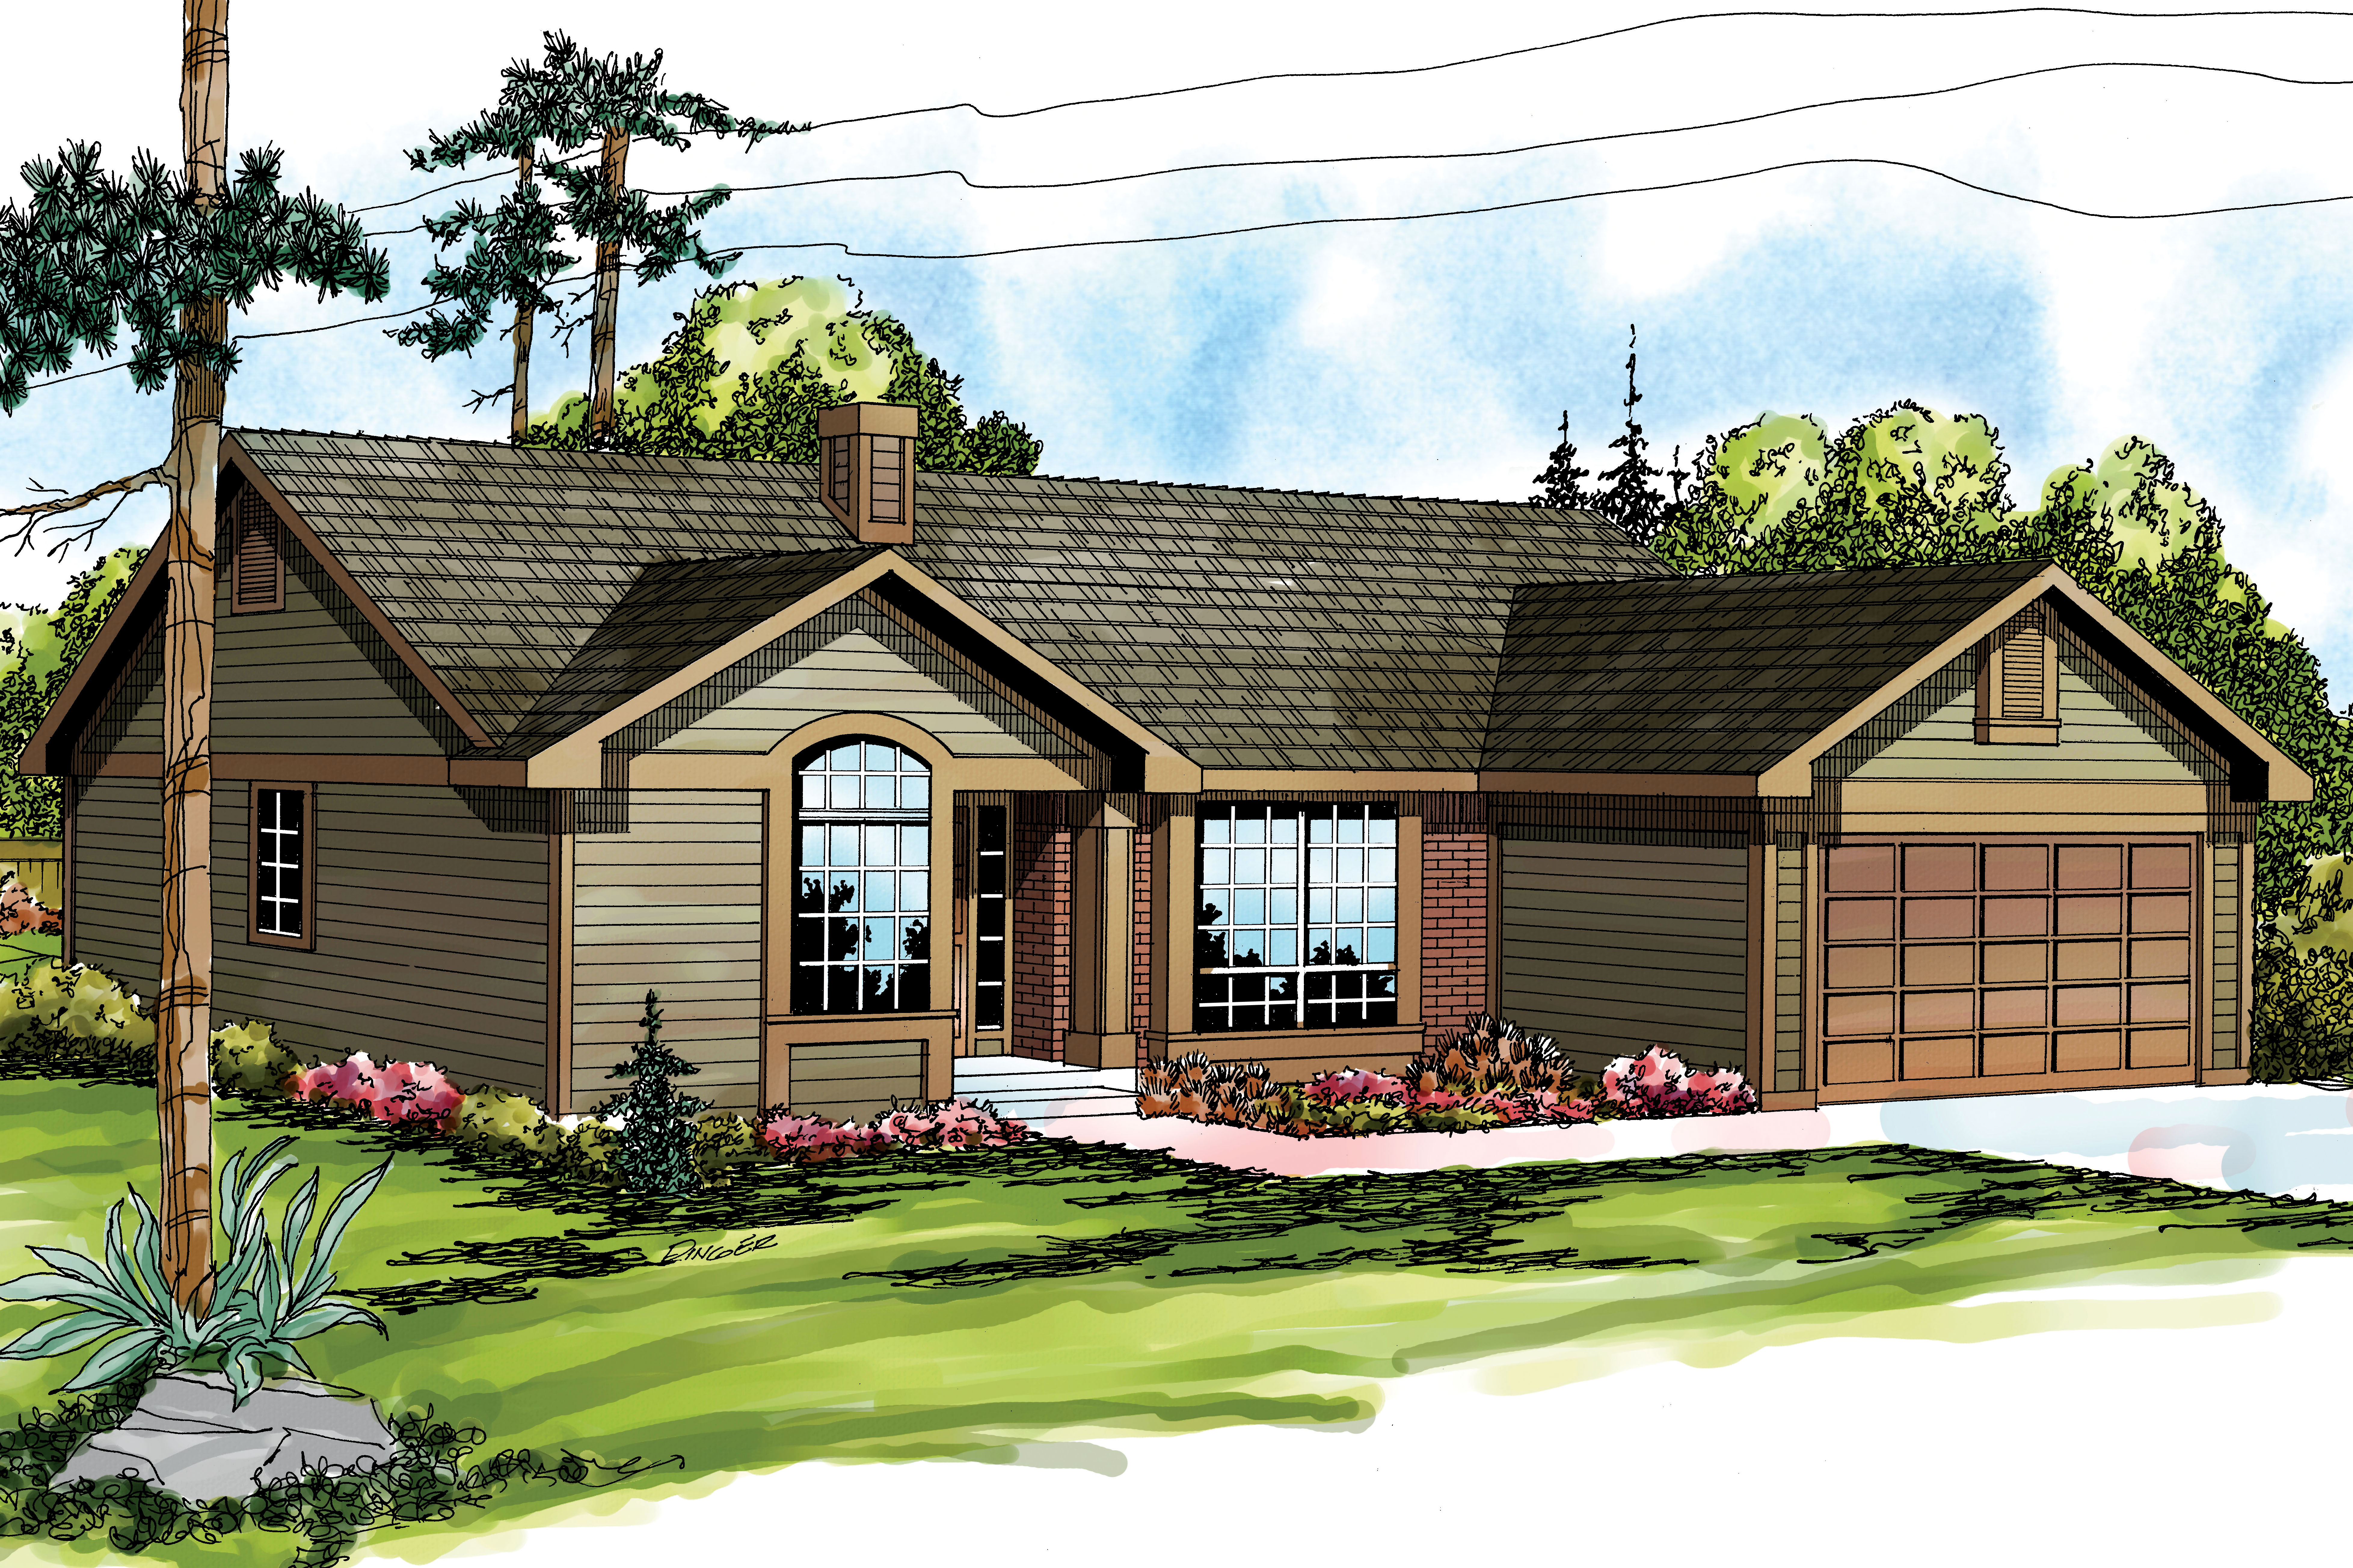 Traditional house plans phoenix 10 061 associated designs House design sites